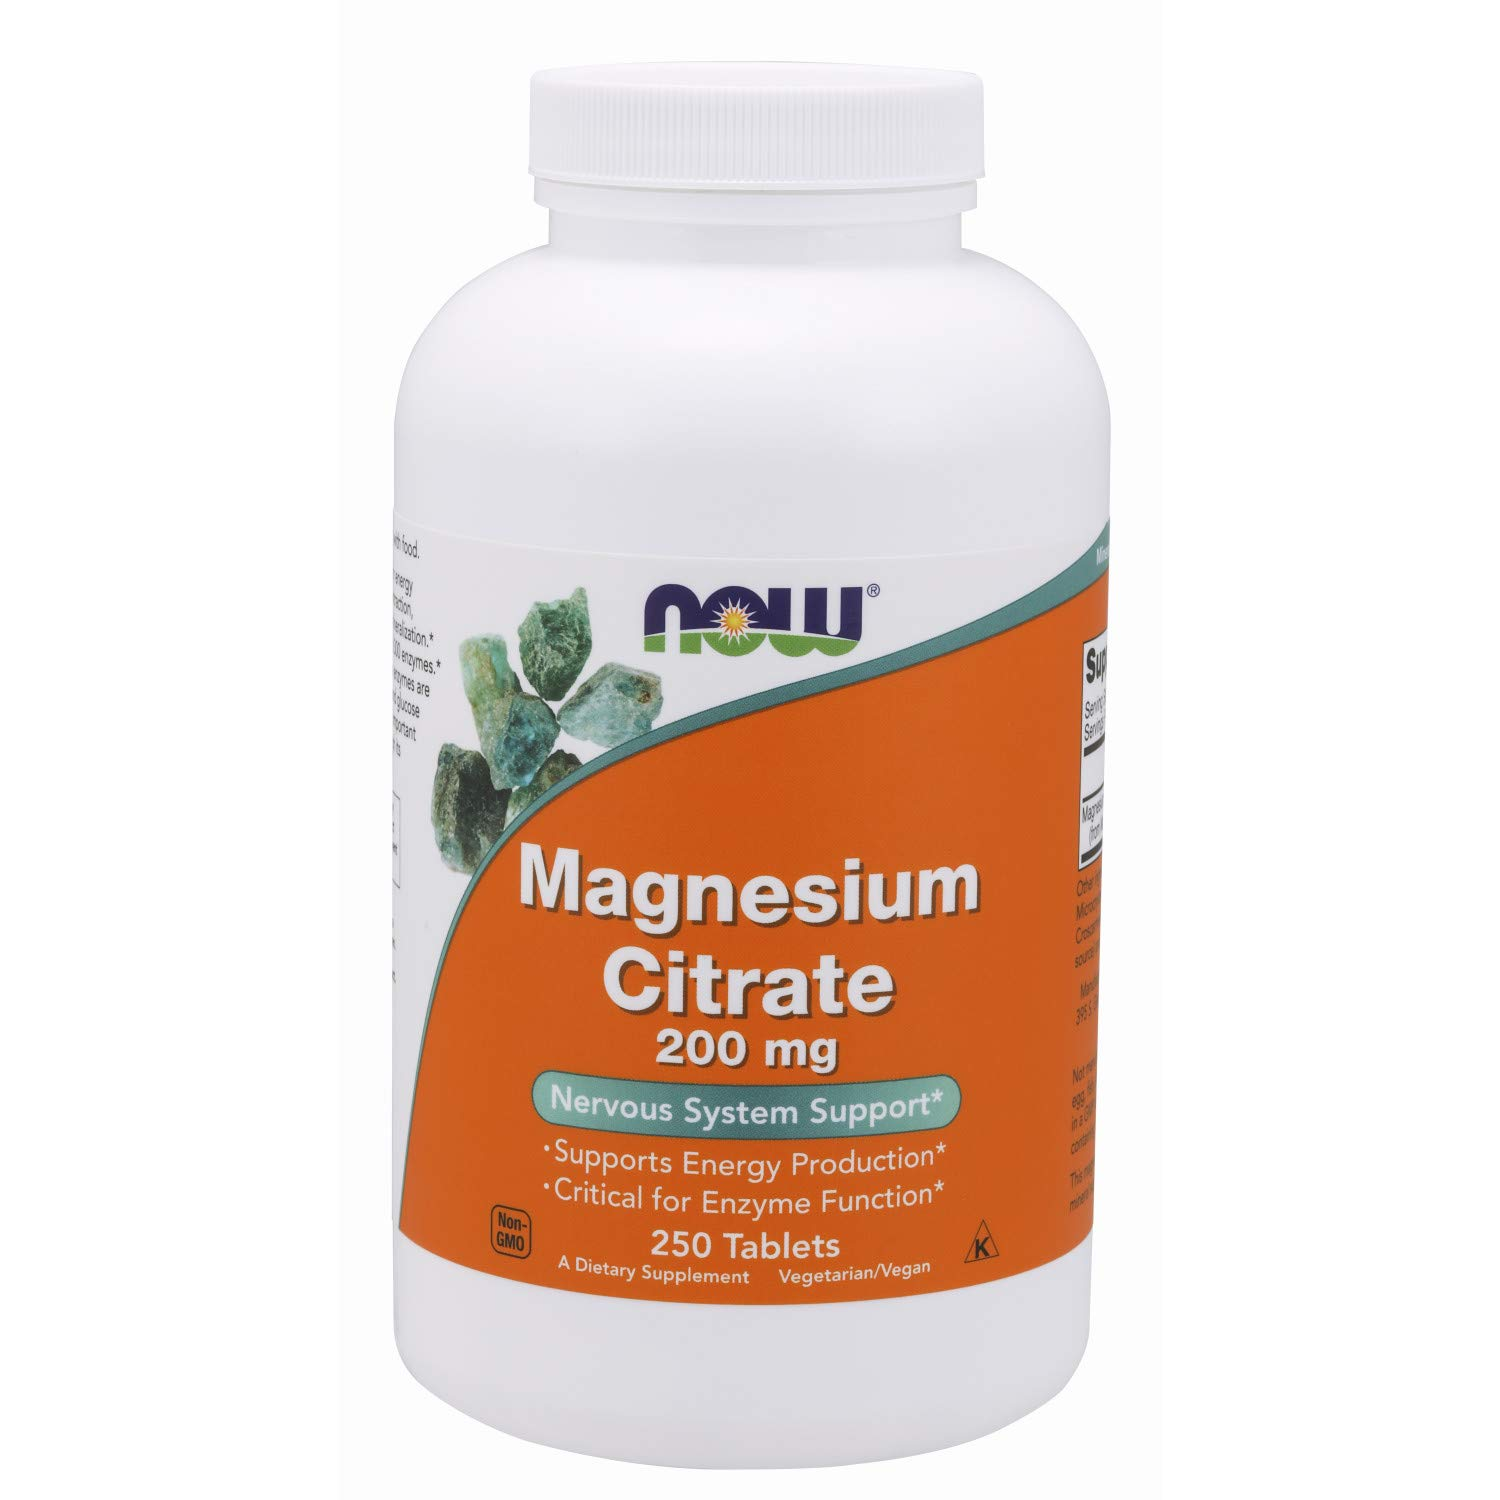 NOW Supplements Magnesium Citrate 200 mg, 250 Tablets